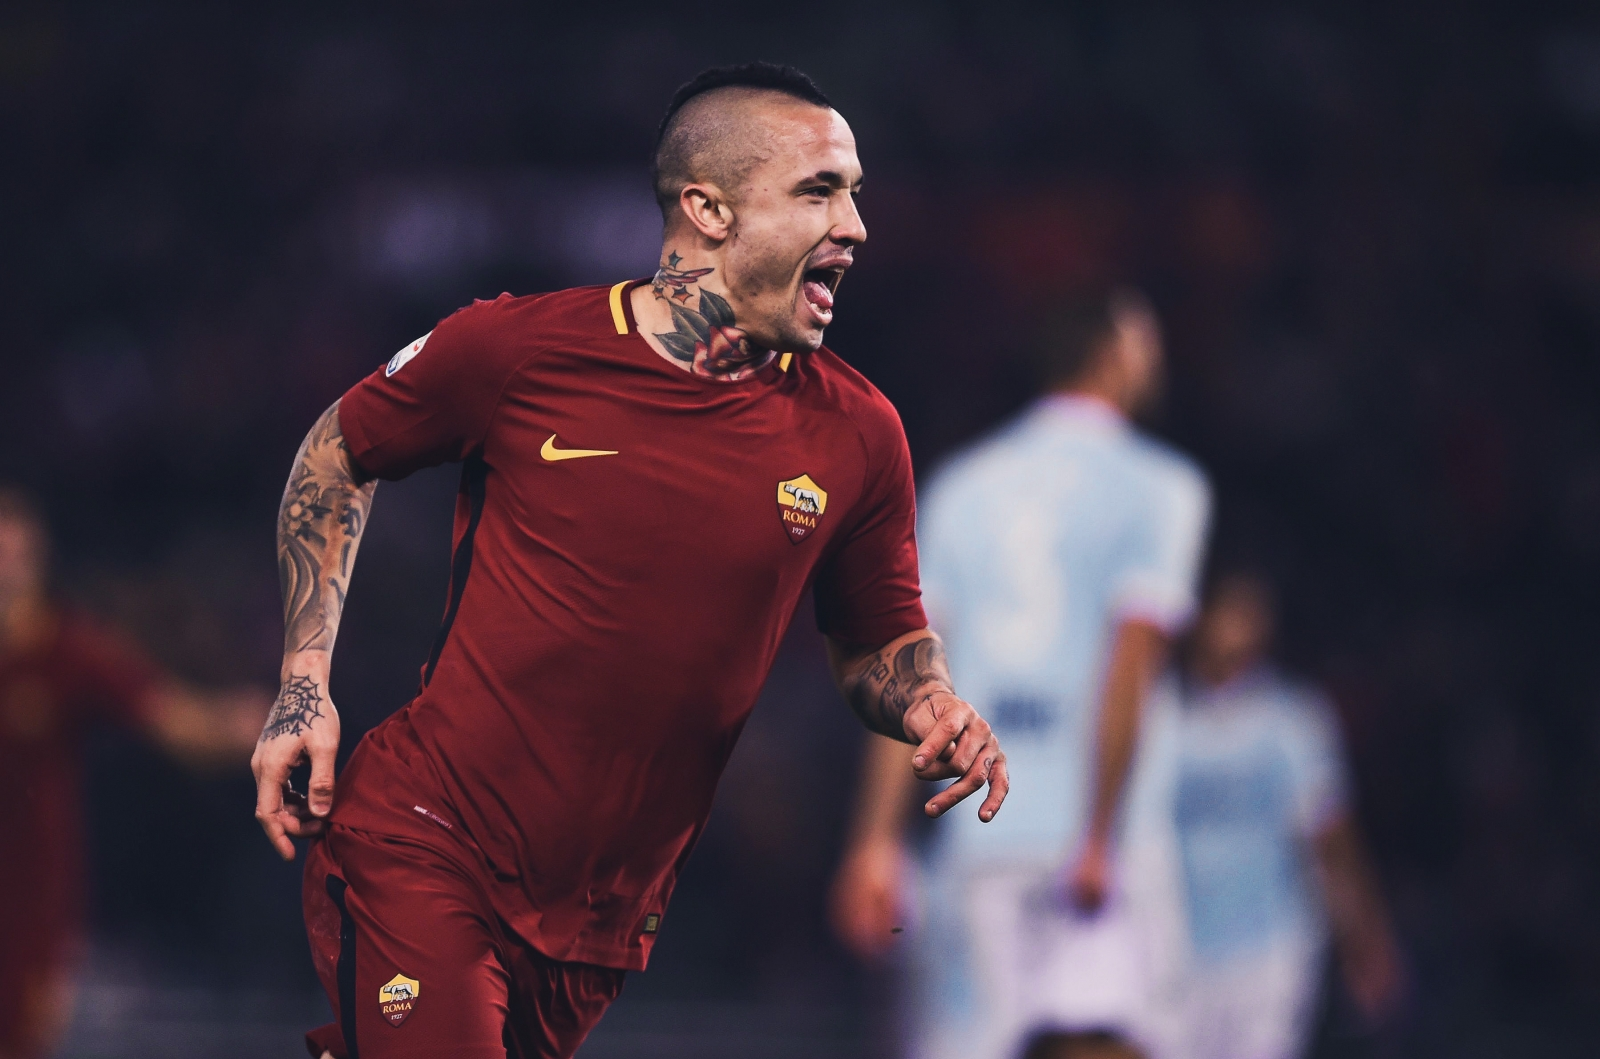 info for 34b9b 72f34 The curious case of Radja Nainggolan: talent, chain-smoker ...